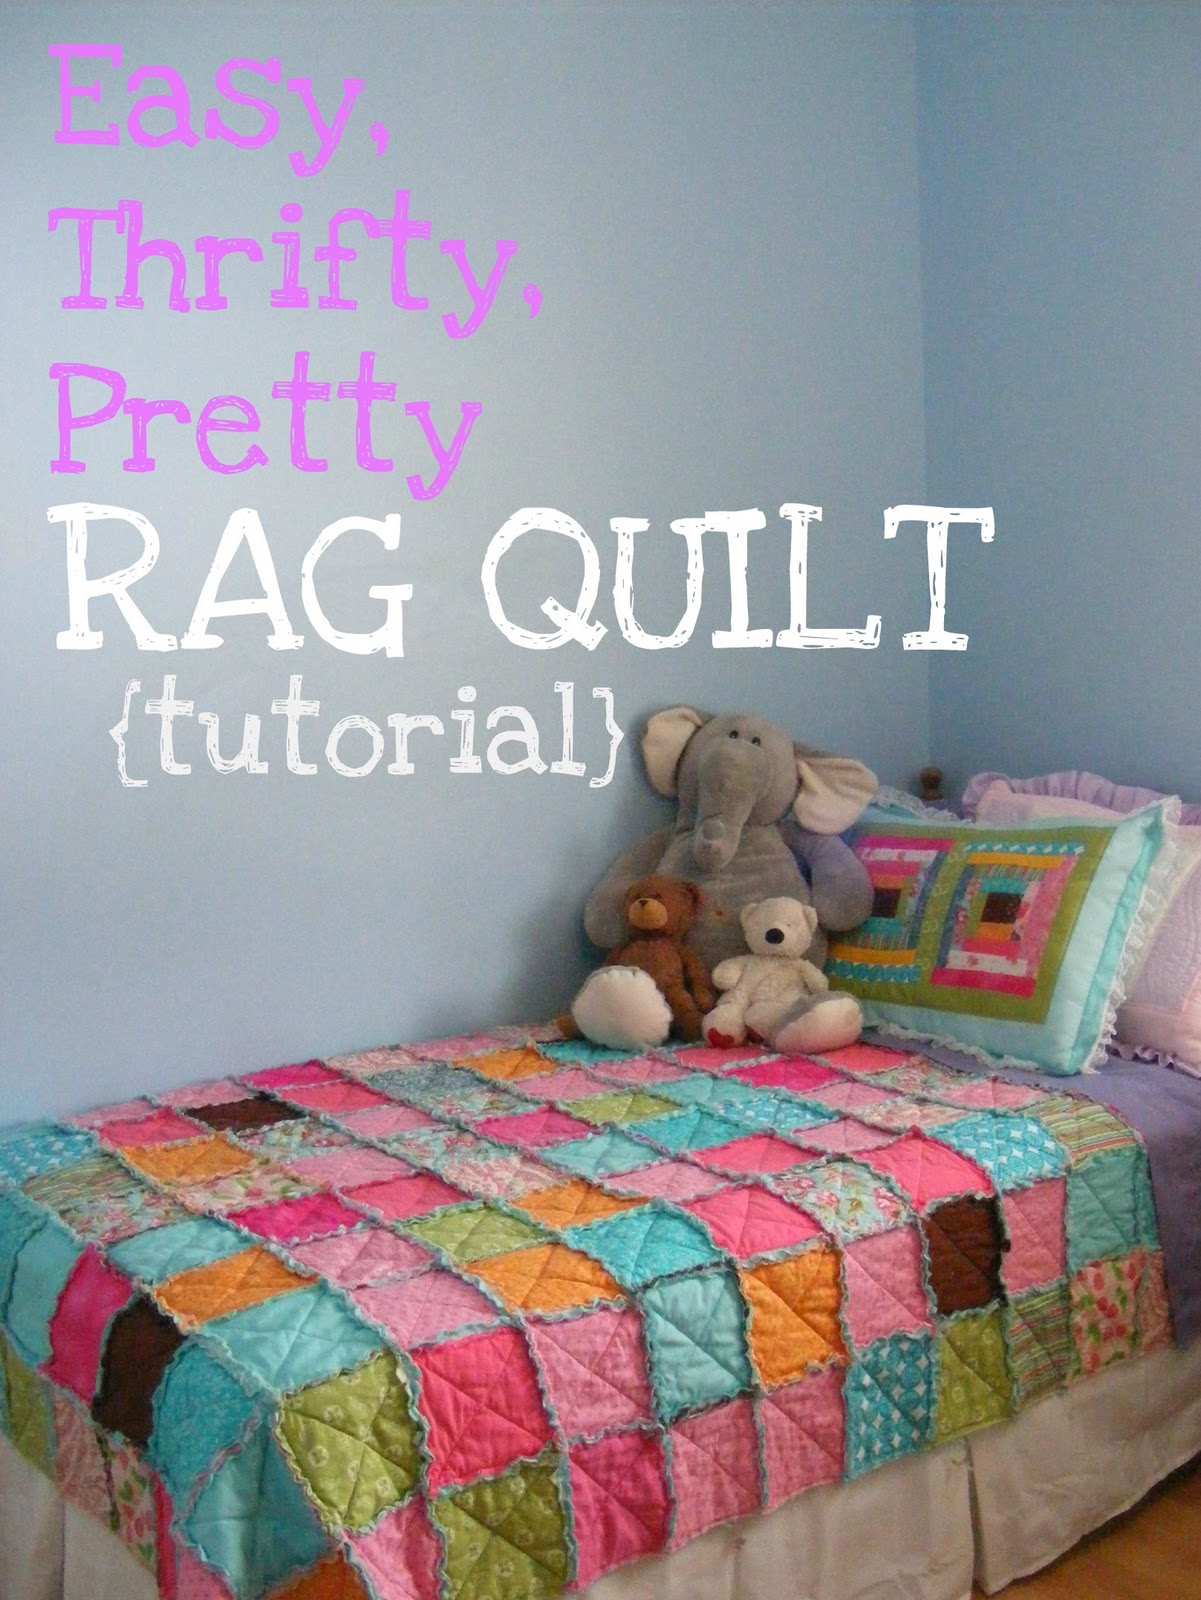 The Complete Guide to Imperfect Homemaking: Easy, Thrifty, Pretty ... : rag quilt how to - Adamdwight.com